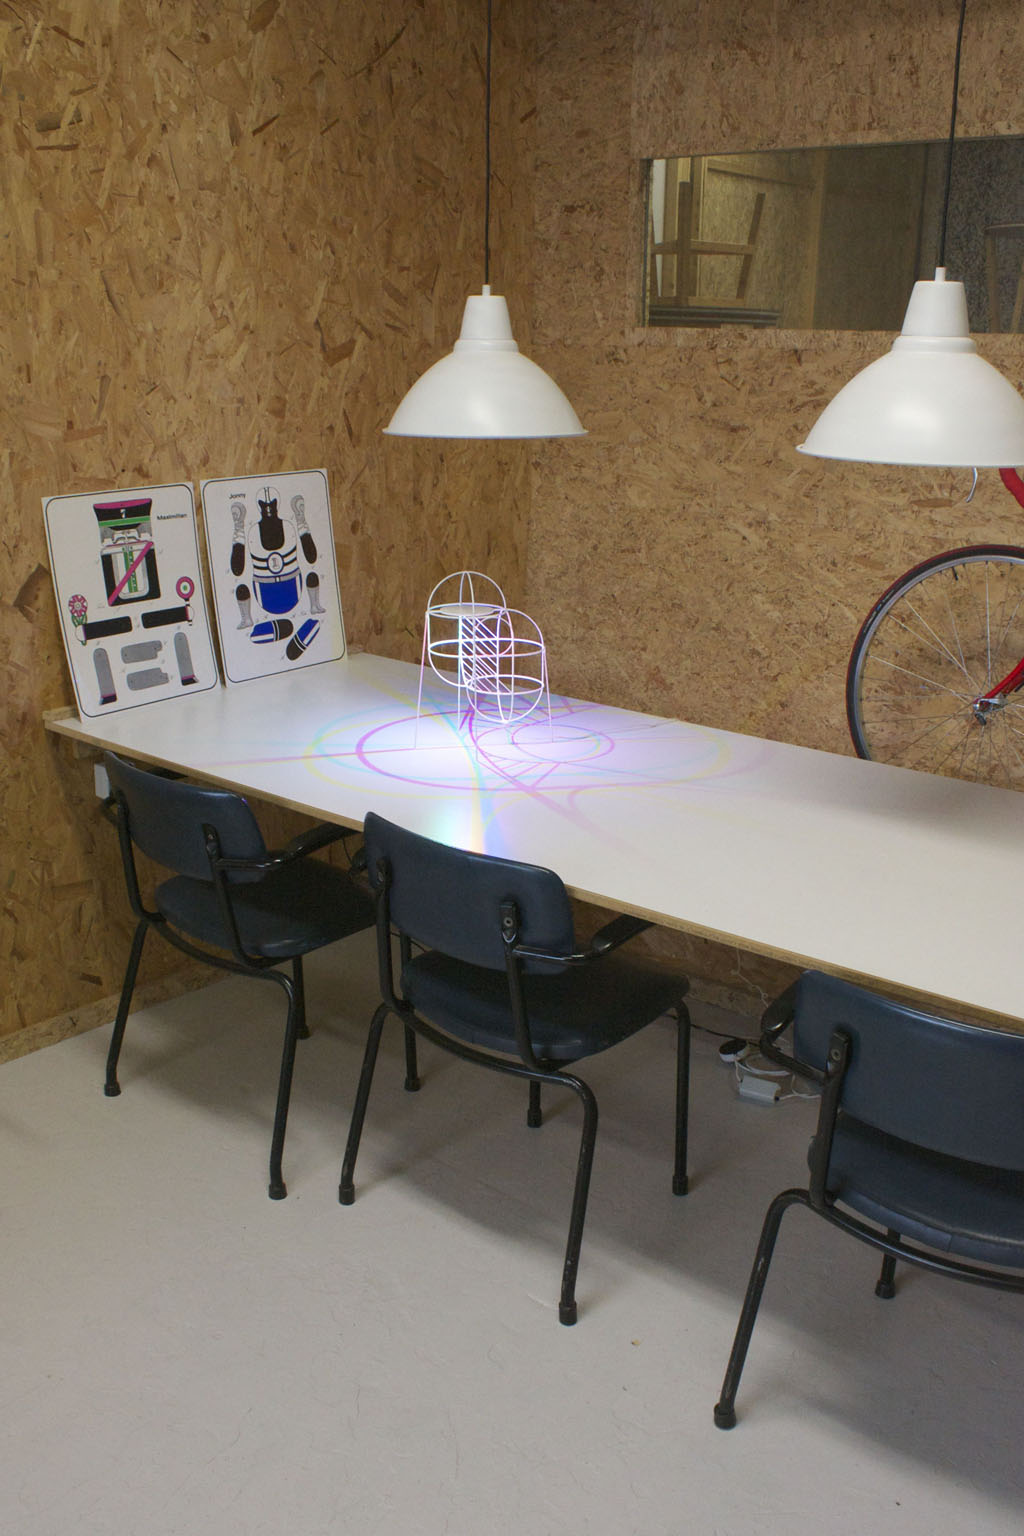 CMYK Up - <p>The 'CMYK up` can be used both on the table or floor. The original CMYK lamp uses the ceiling to project interlacing lines of cyan, magenta and yellow. The 'up' has the floor and table as playground. Its legs are not 3d printed, but are attached afterwards and are made of fiber-glass.</p>    Matter of Stuff